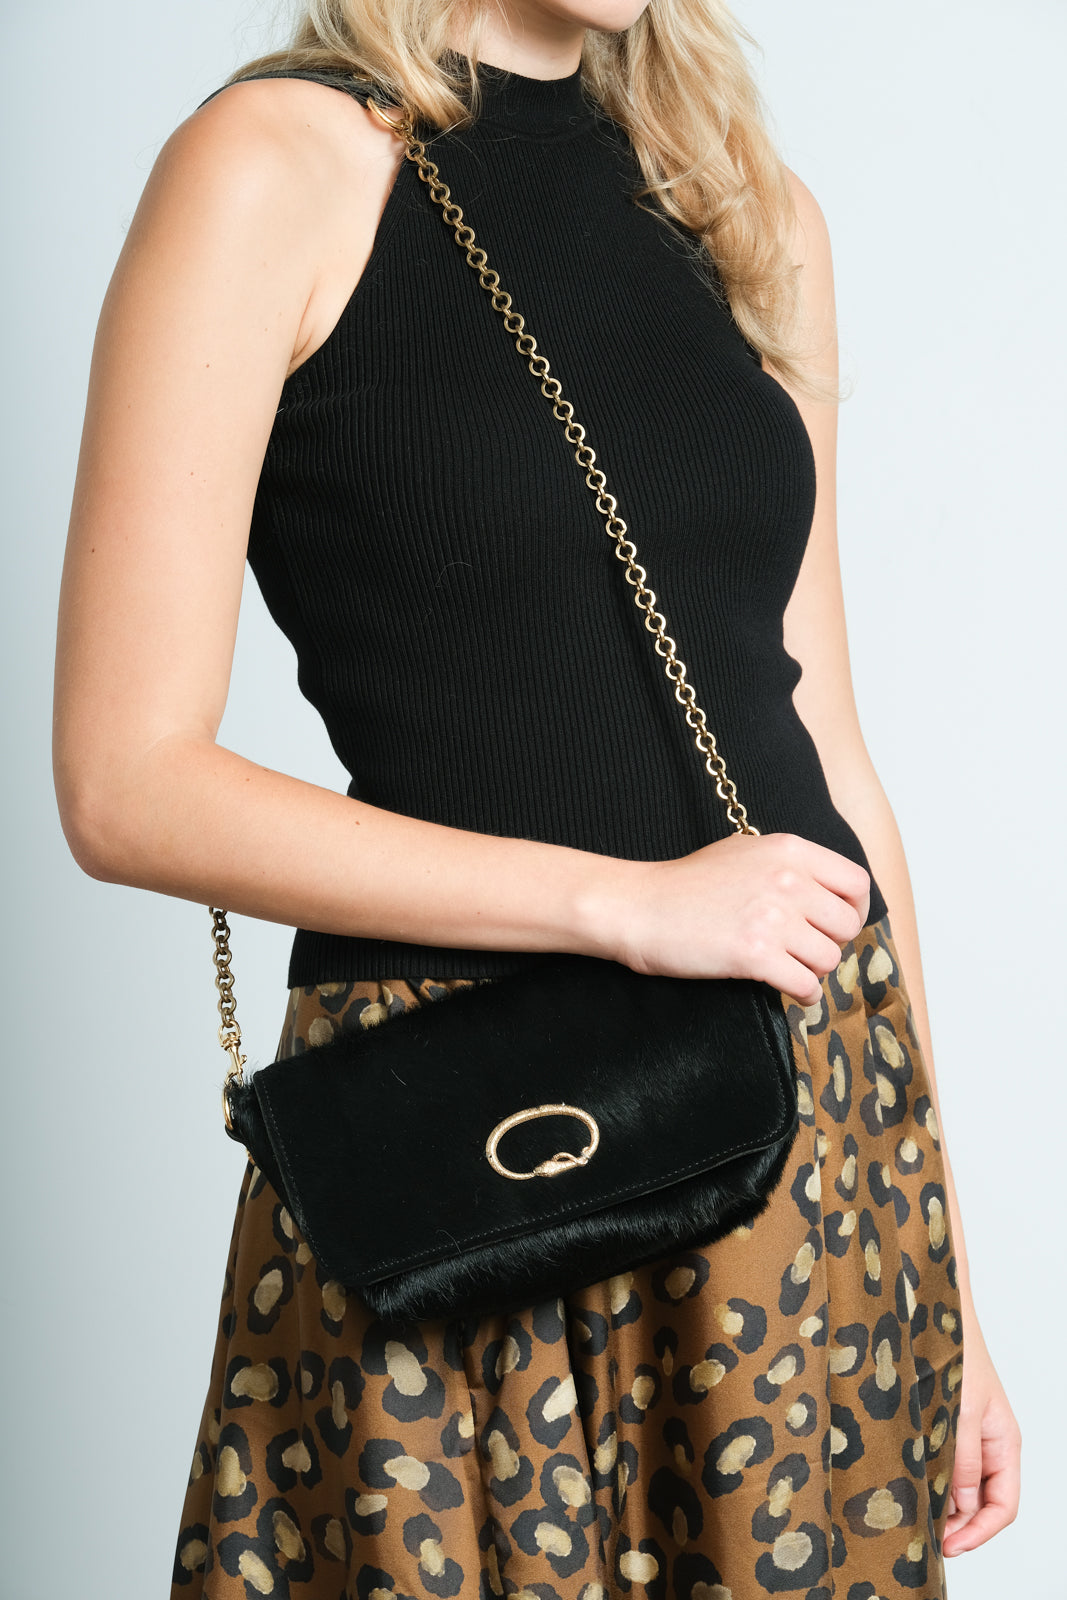 SLP Mai Tai bag in black with cobra motif,  gold detachable chain